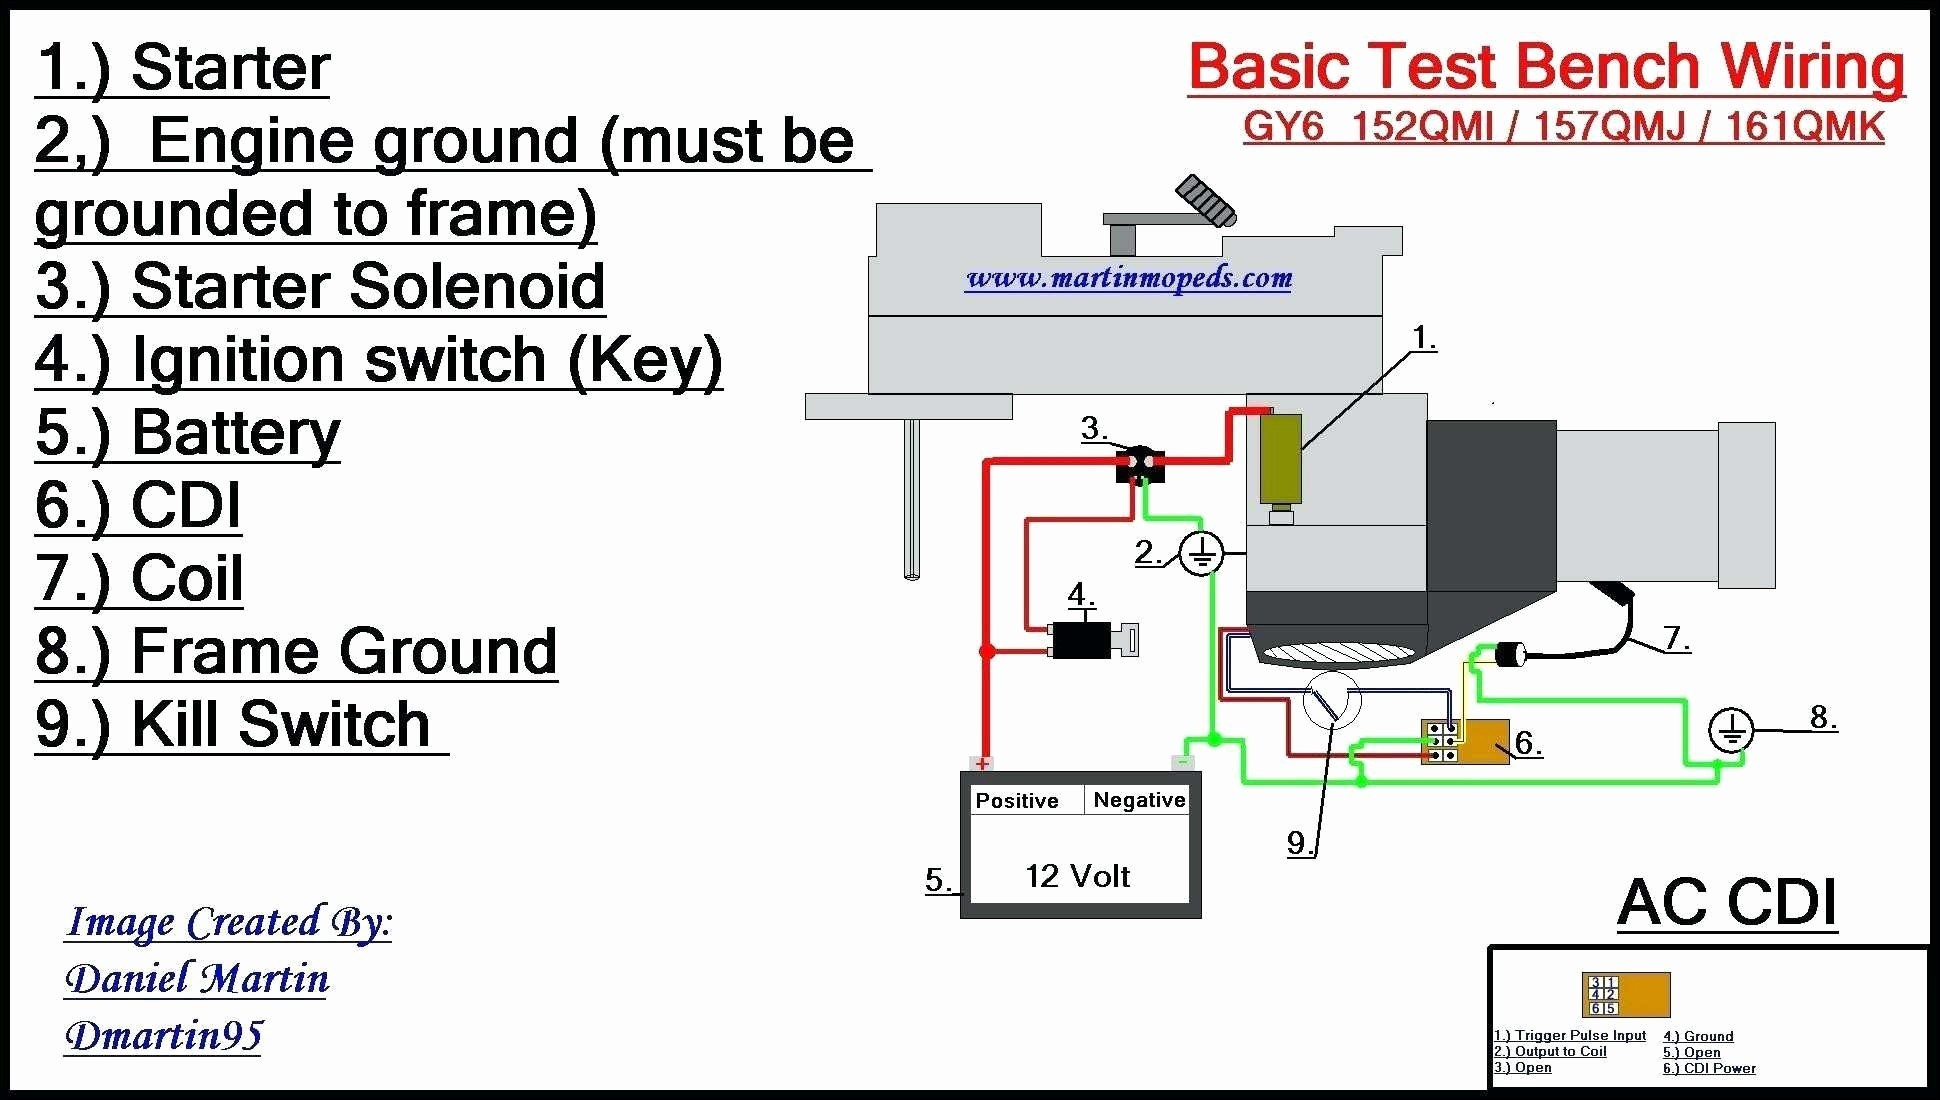 Gy6 Engine Wiring Diagram Fresh 2 Pin Flasher Relay Wiring Diagram • Electrical Outlet Symbol 2018 Of Gy6 Engine Wiring Diagram